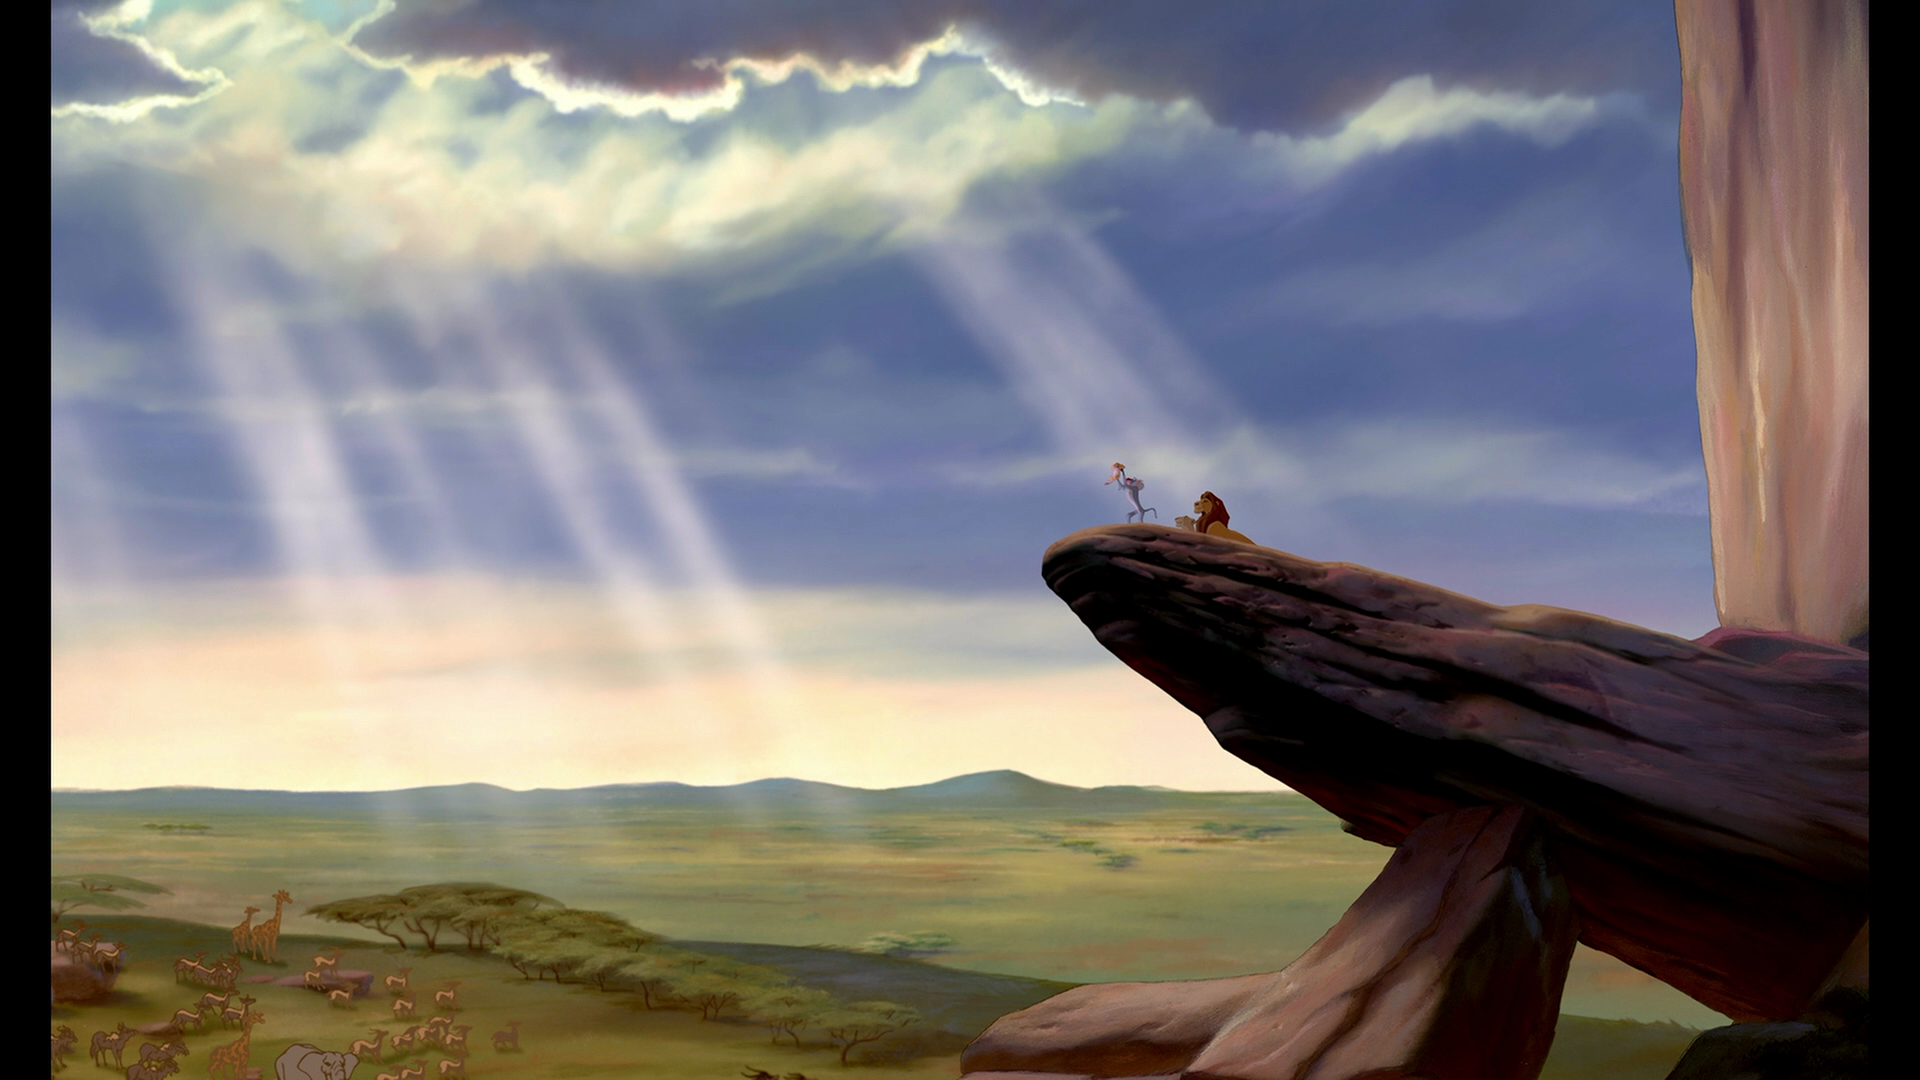 Lion king pride rock scene - photo#24